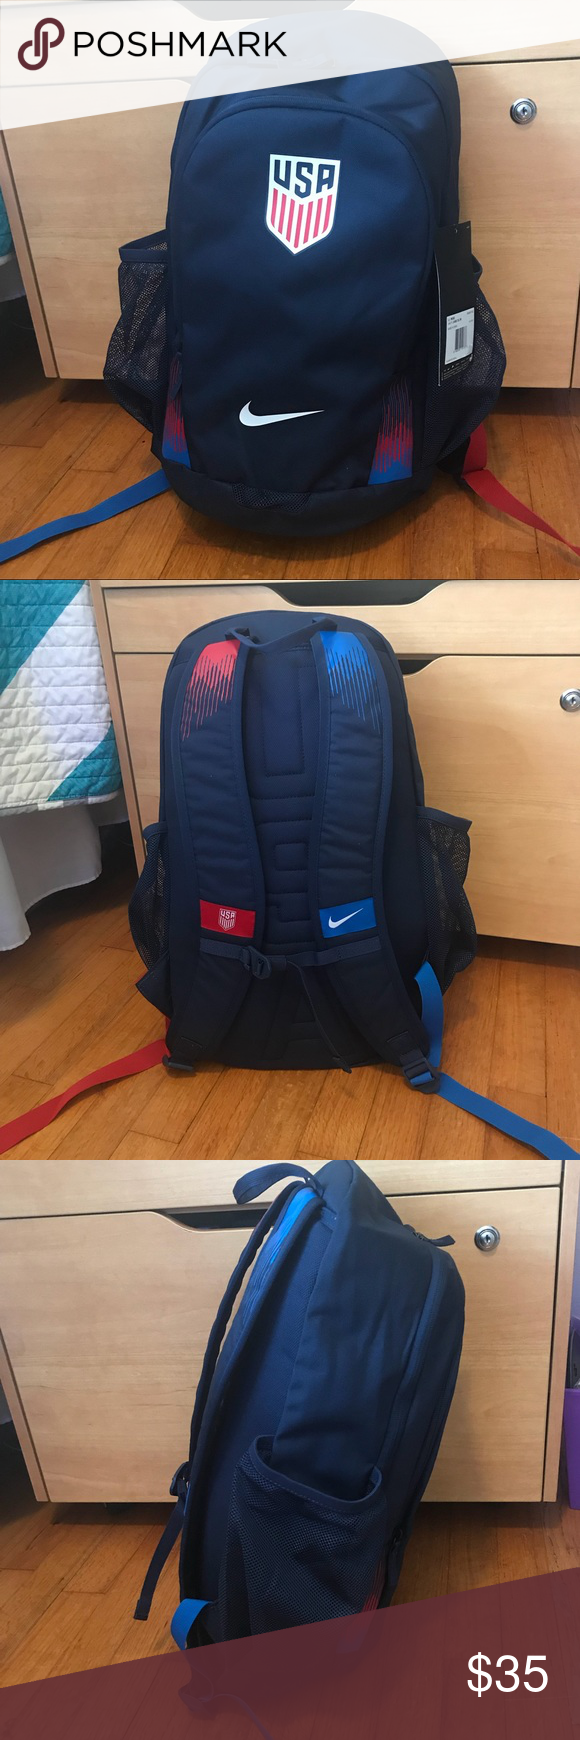 cc973f8d2315 NWT Nike USA Stadium Backpack BA5457-410 Brand New with tags No trades The  U.S.